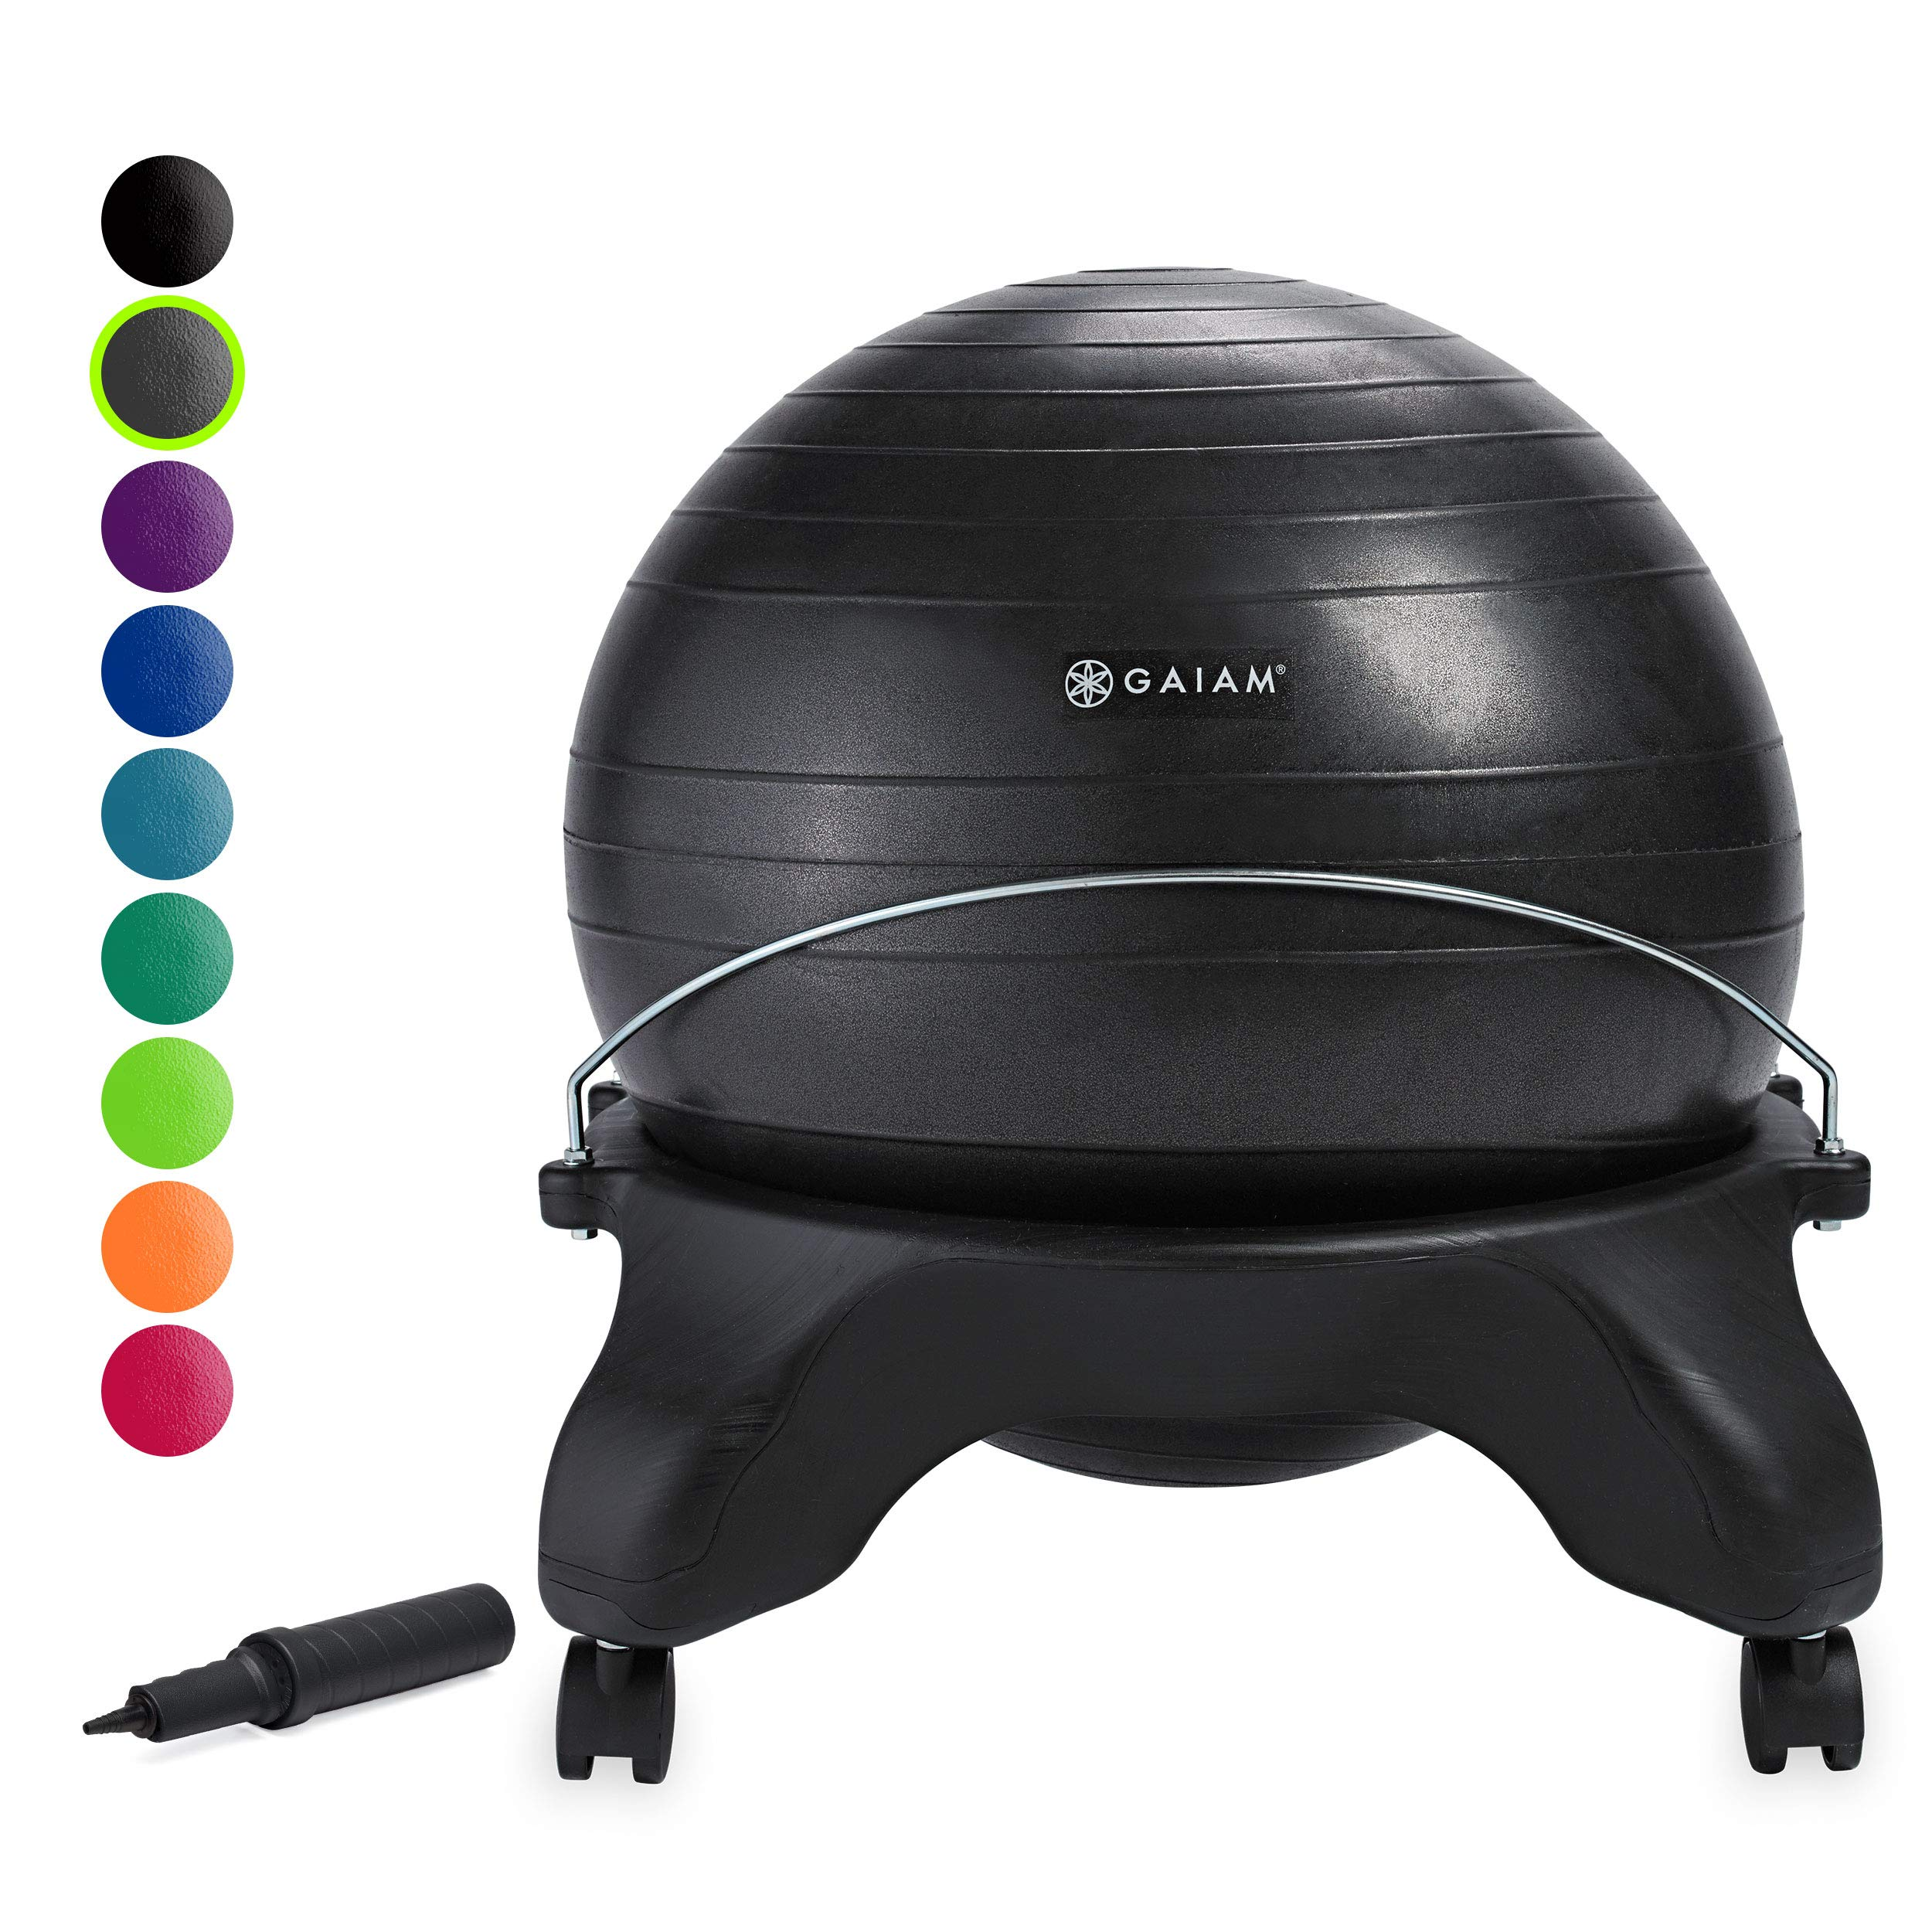 Gaiam Classic Backless Balance Ball Chair – Exercise Stability Yoga Ball Premium Ergonomic Chair for Home and Office Desk with Air Pump, Exercise Guide and Satisfaction Guarantee, Charcoal